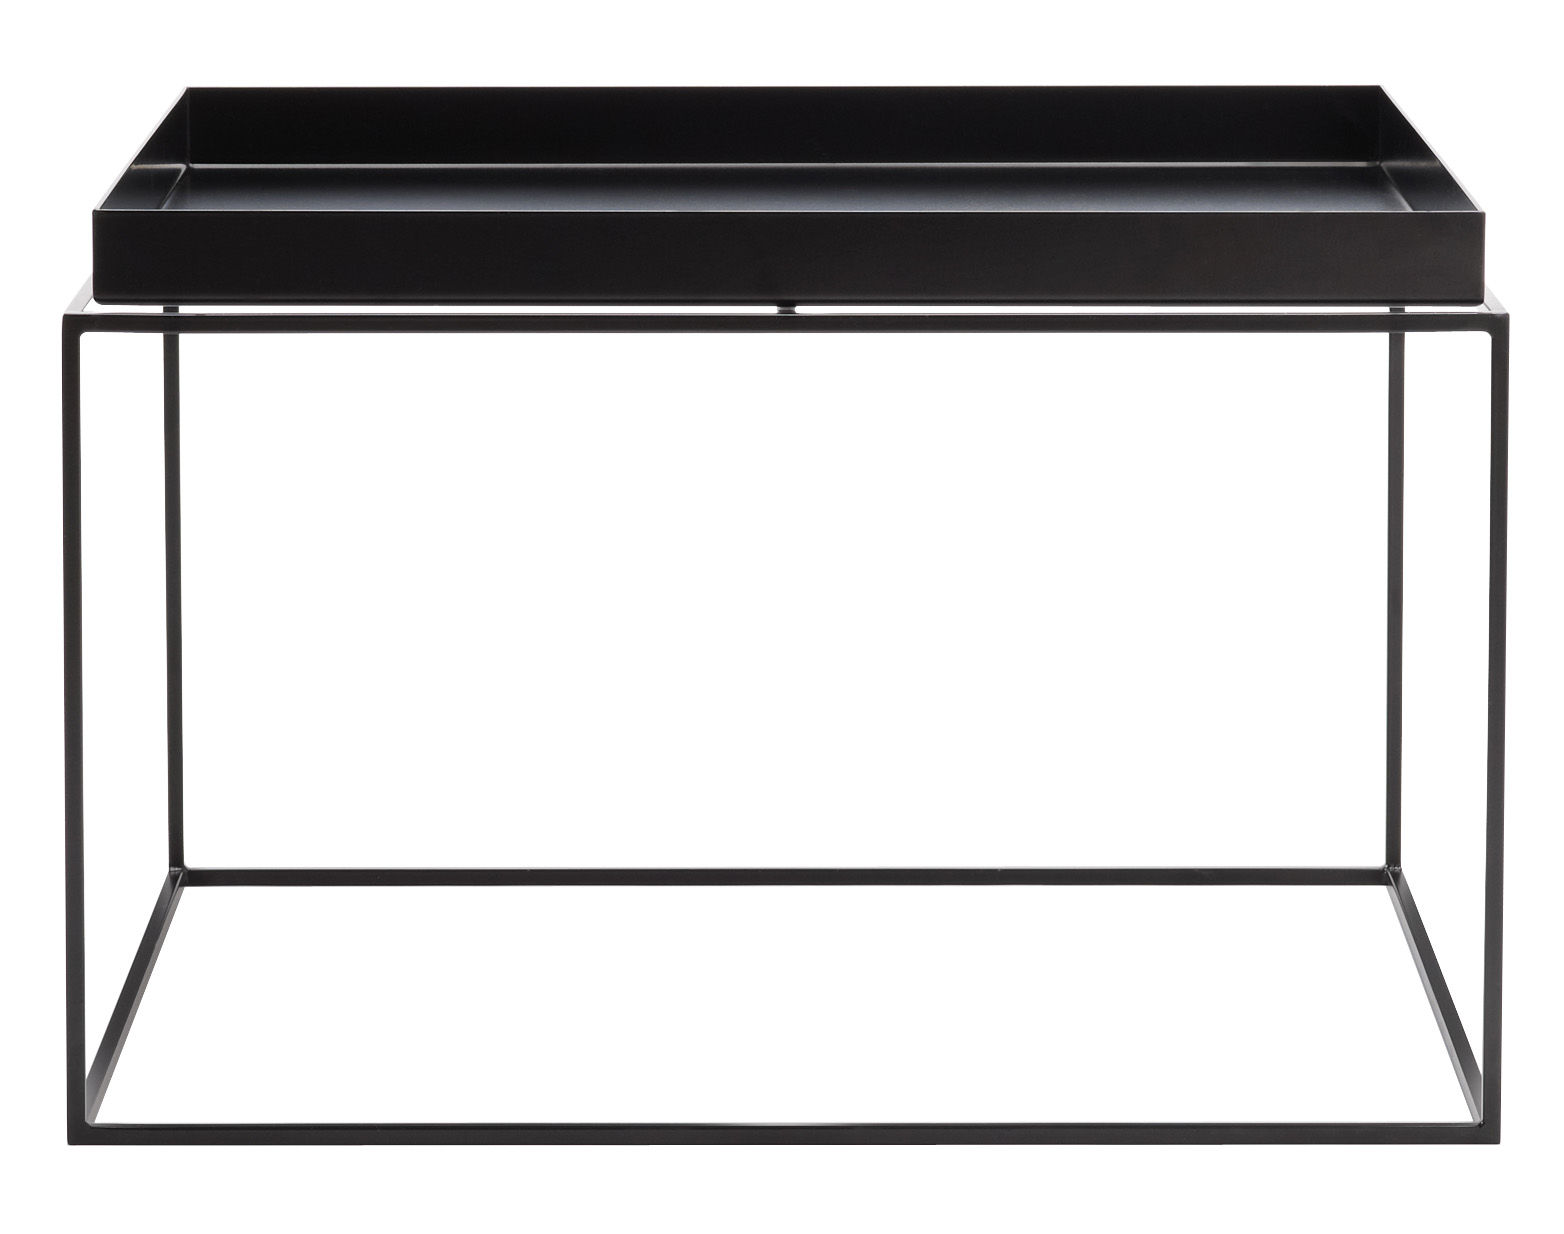 tray coffee table square h 35 cm 60 x 60 cm black by hay. Black Bedroom Furniture Sets. Home Design Ideas